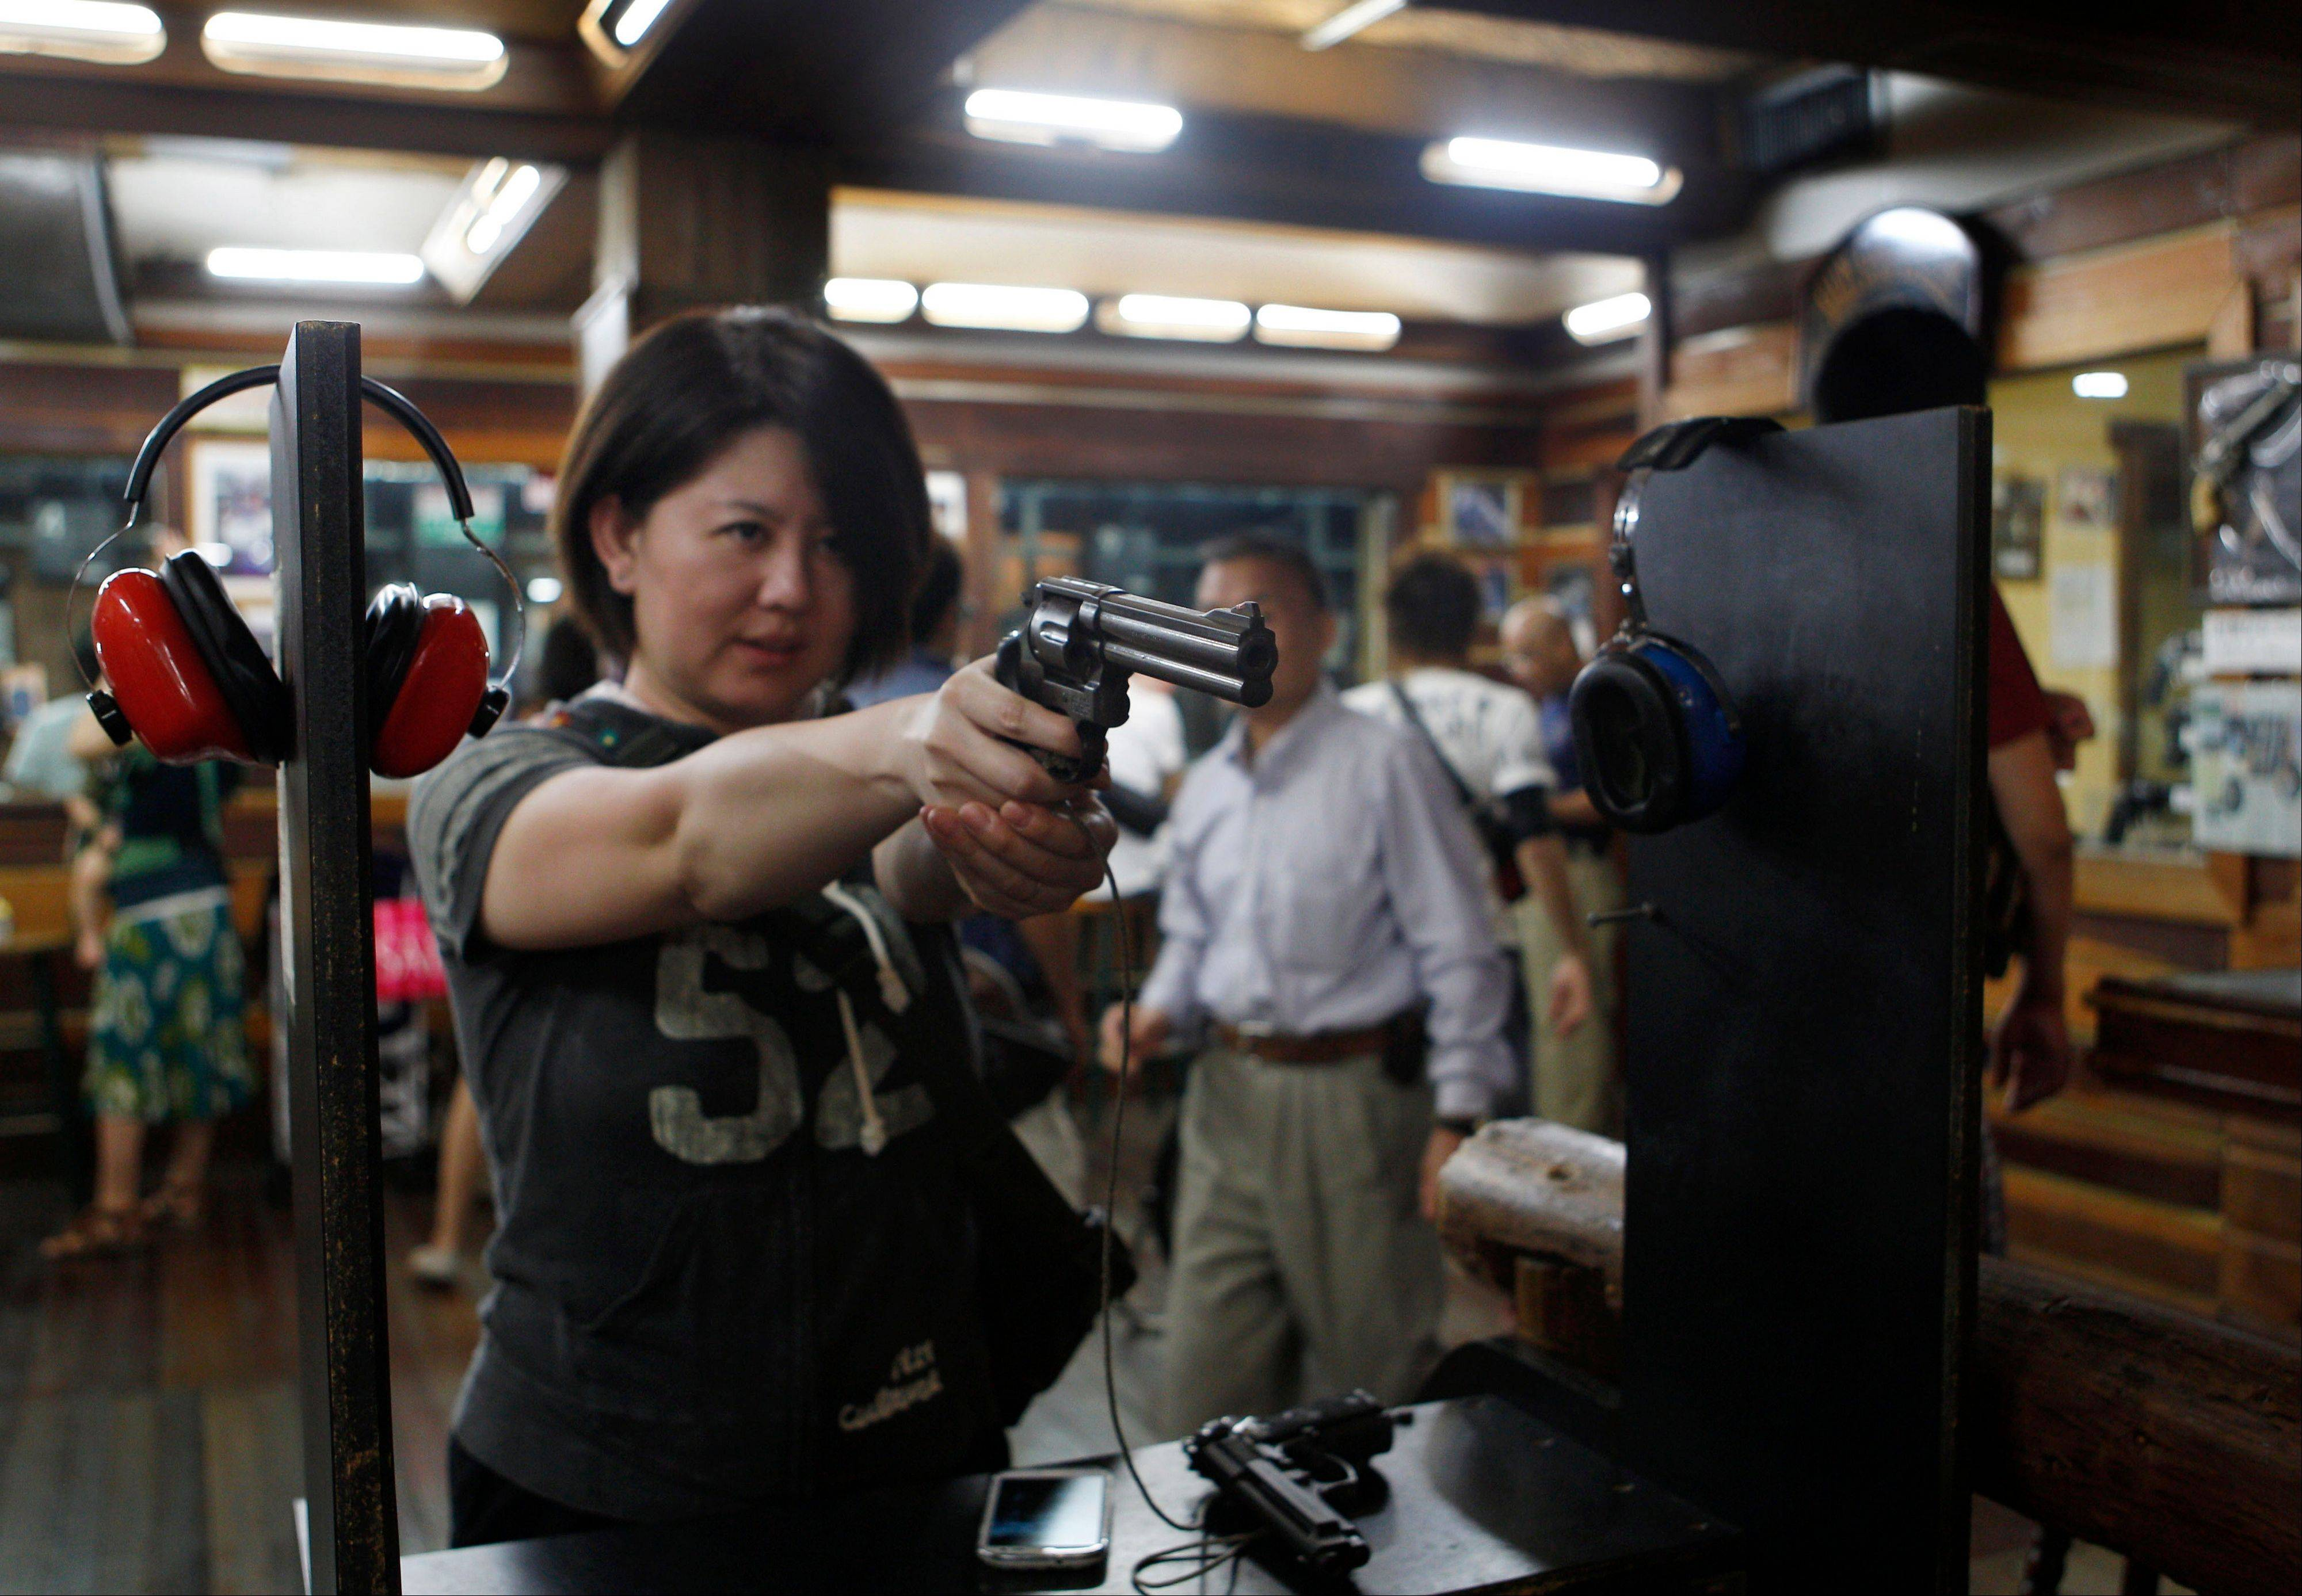 Japanese tourist Natsue Matsumoto, 38, warms up for a round of shooting at the Western Frontier Village range in Tamuning, Guam. Gun tourism is a big attraction on the tiny U.S. territory, drawing thousands of visitors who can�t own guns in their own countries.